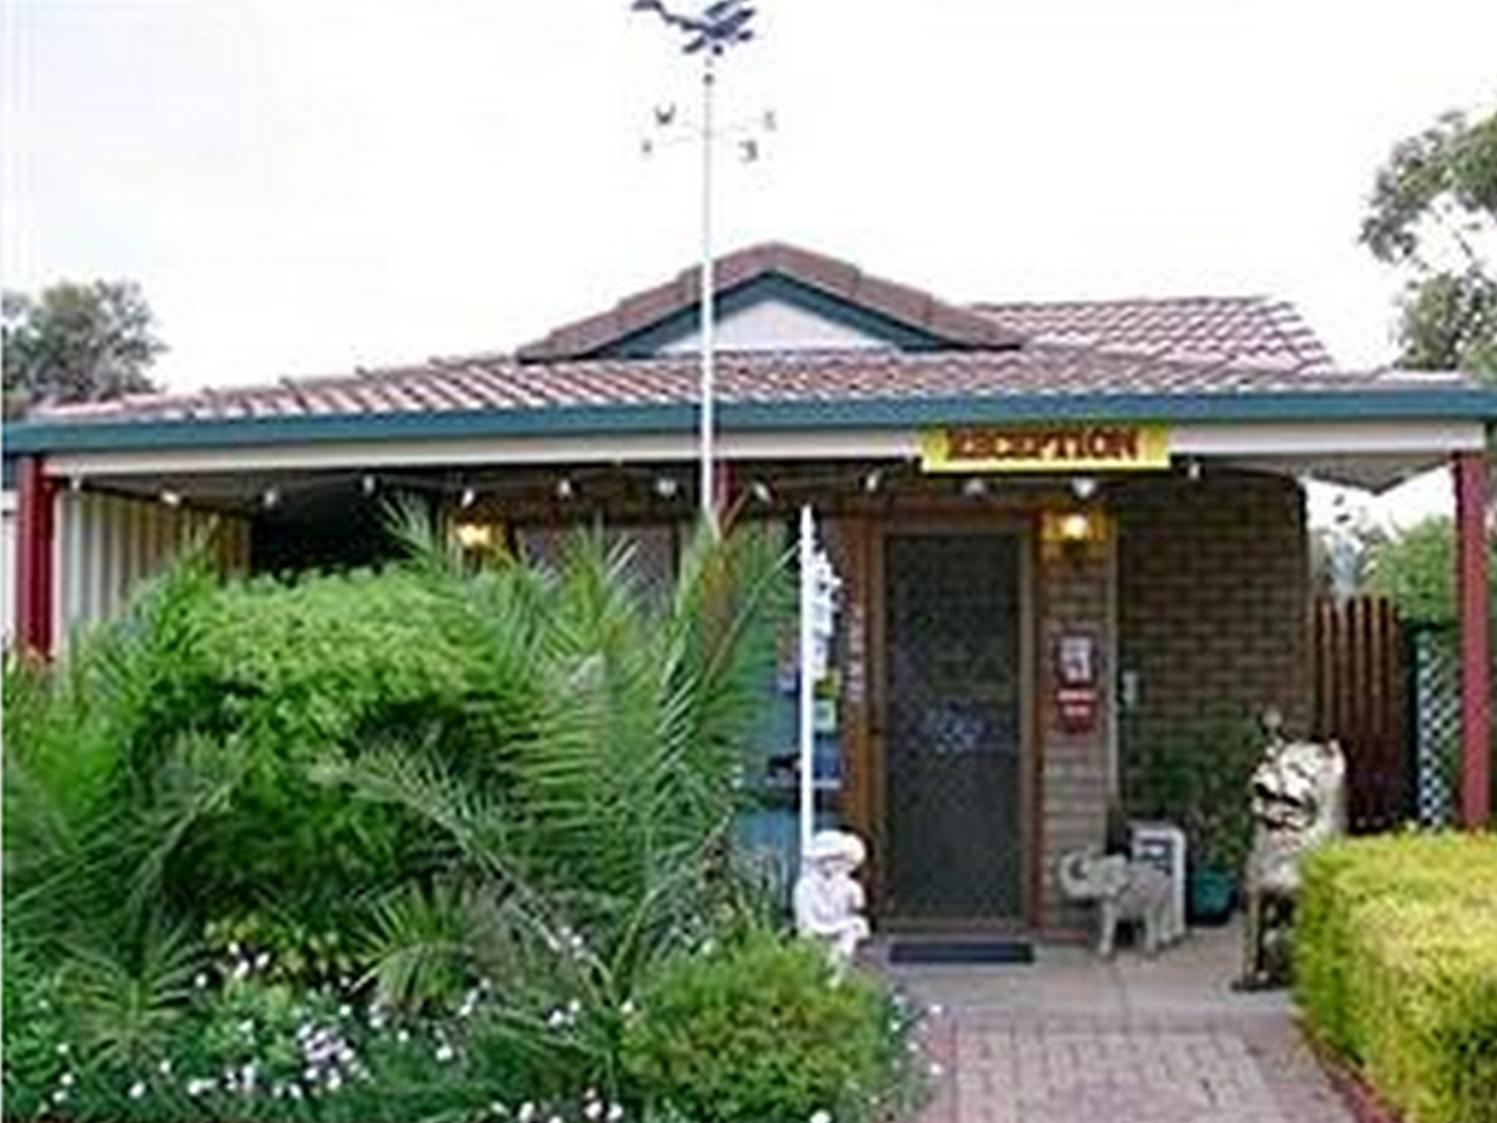 Airport Whyalla Motel, Whyalla